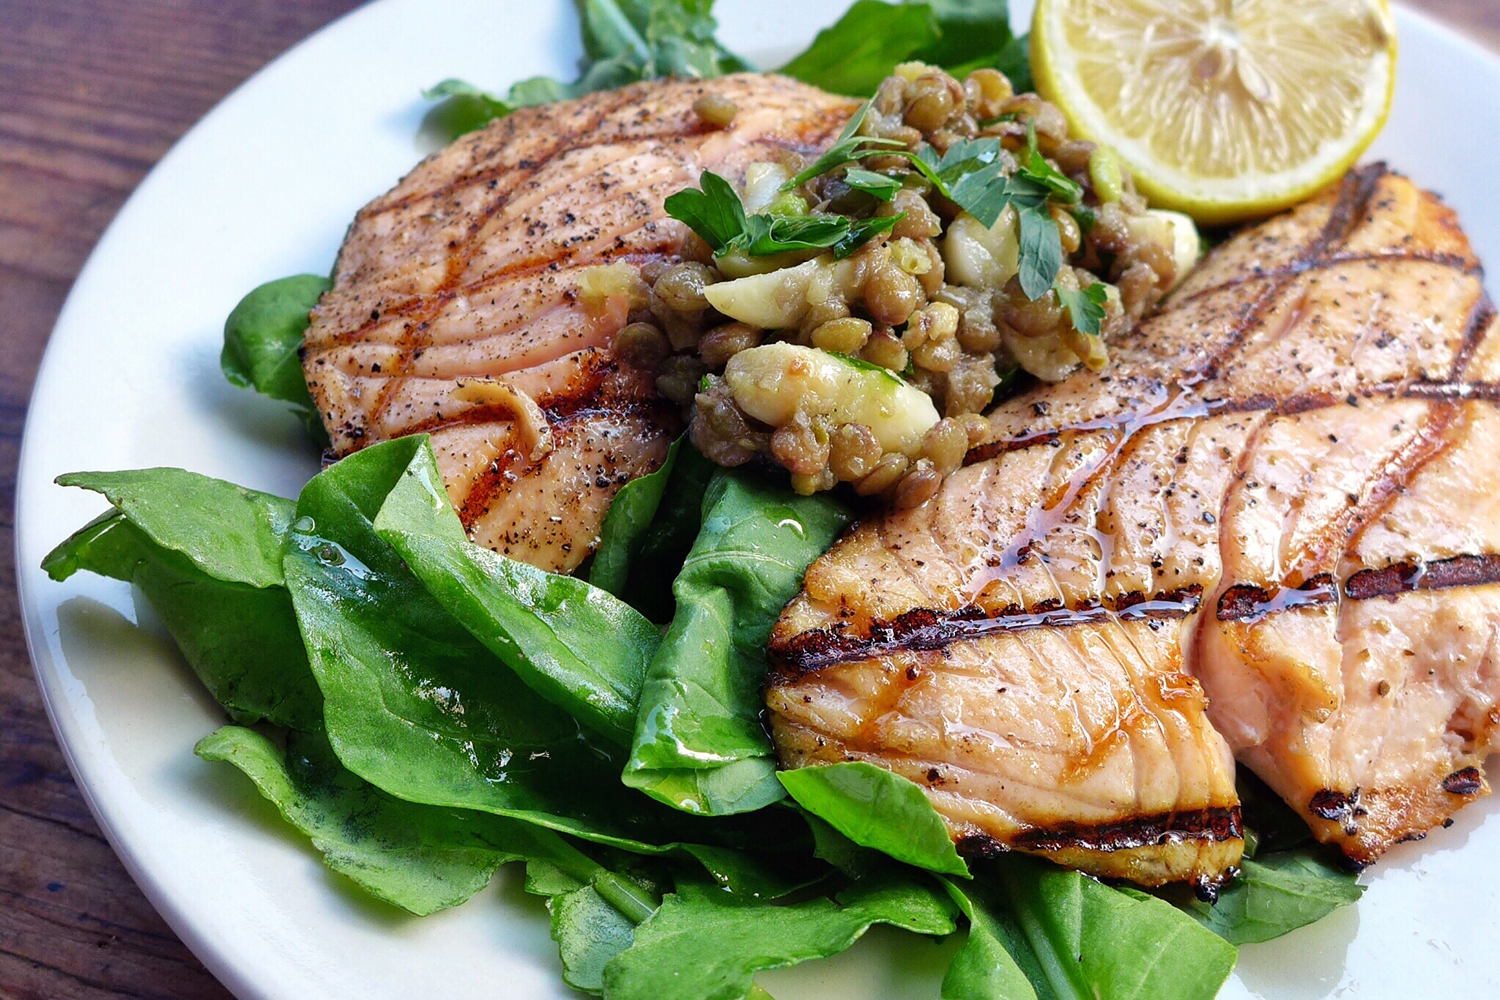 The Grilled Salmon